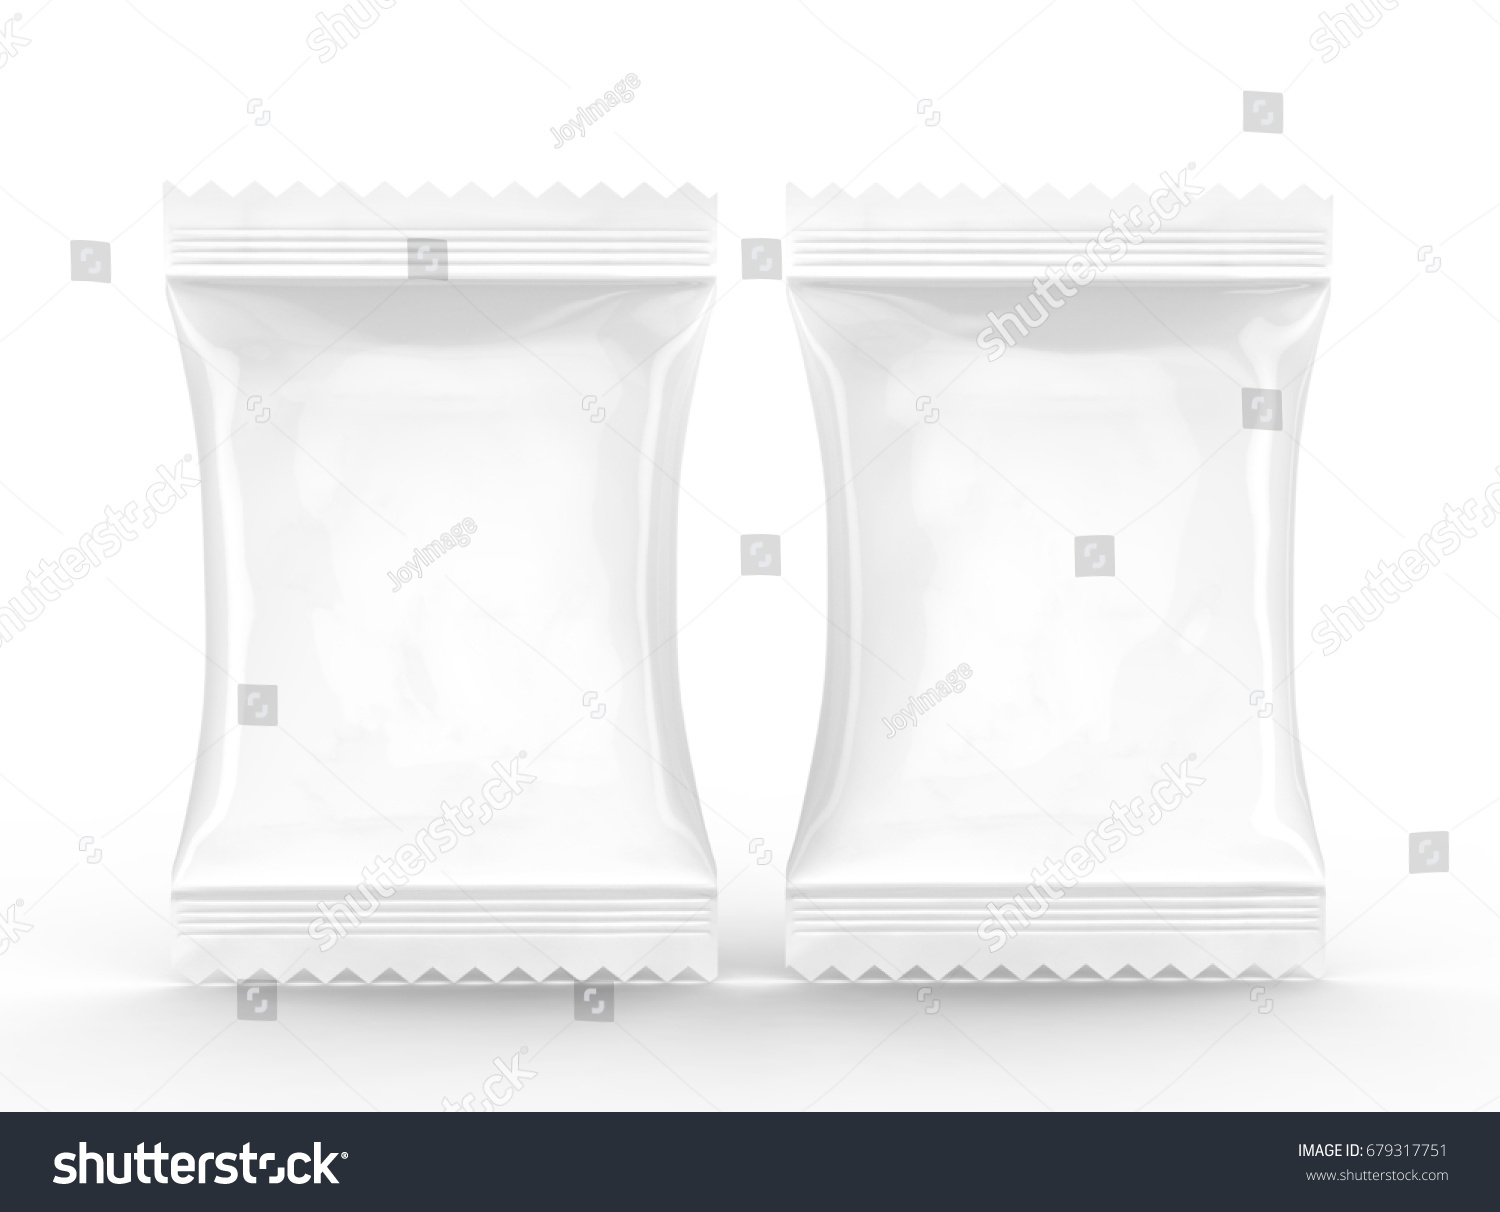 Crackers Package Template Blank Food Foil Stock Illustration ...